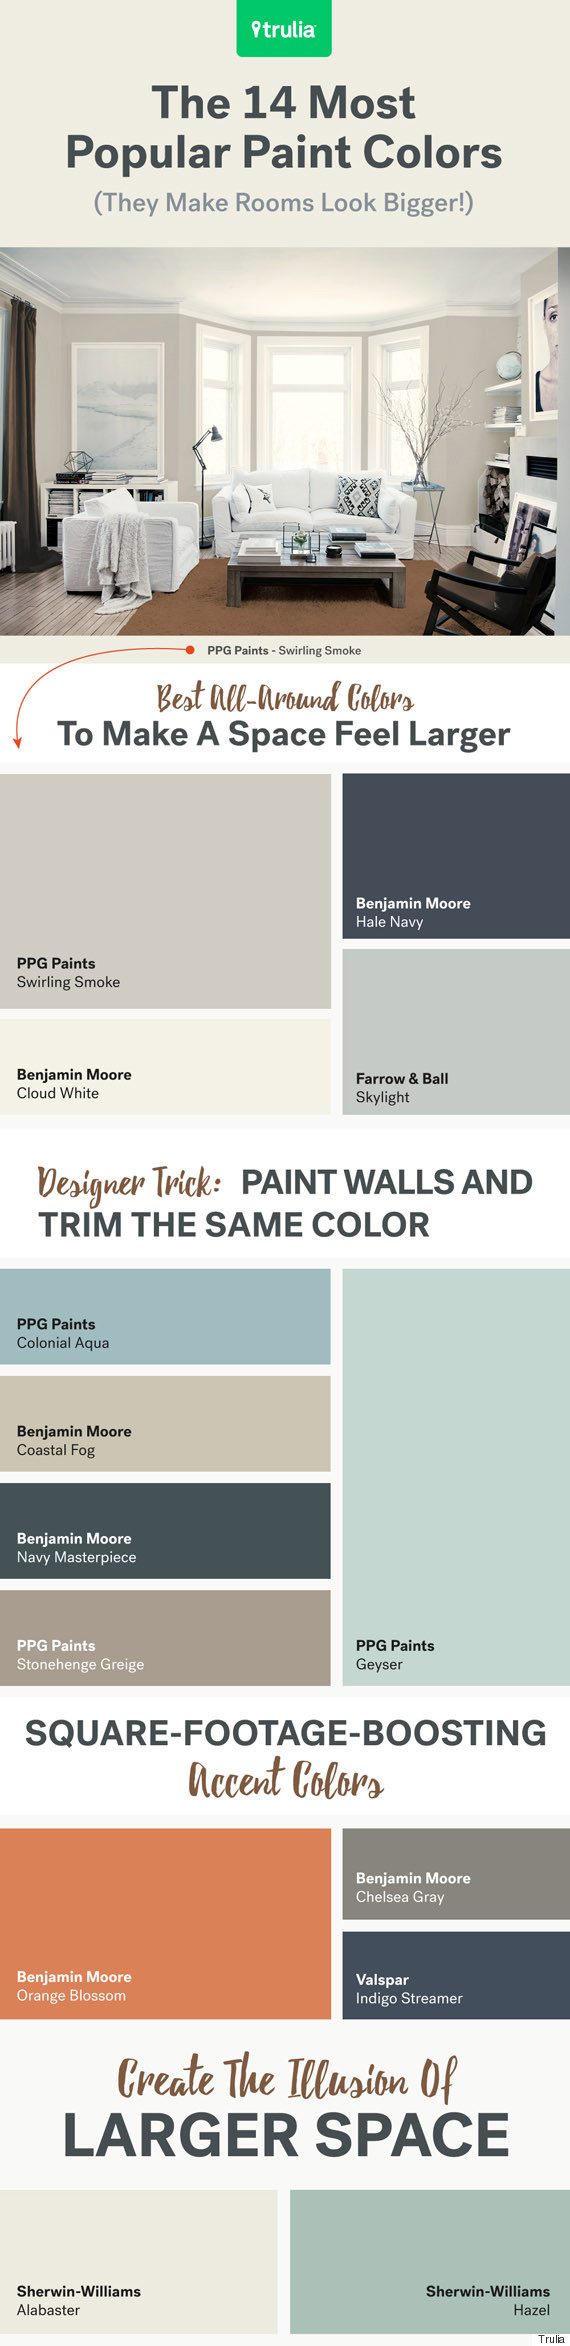 Best Benjamin Moore Gray Colors The 14 Most Popular Paint Colors They Make A Room Look Bigger